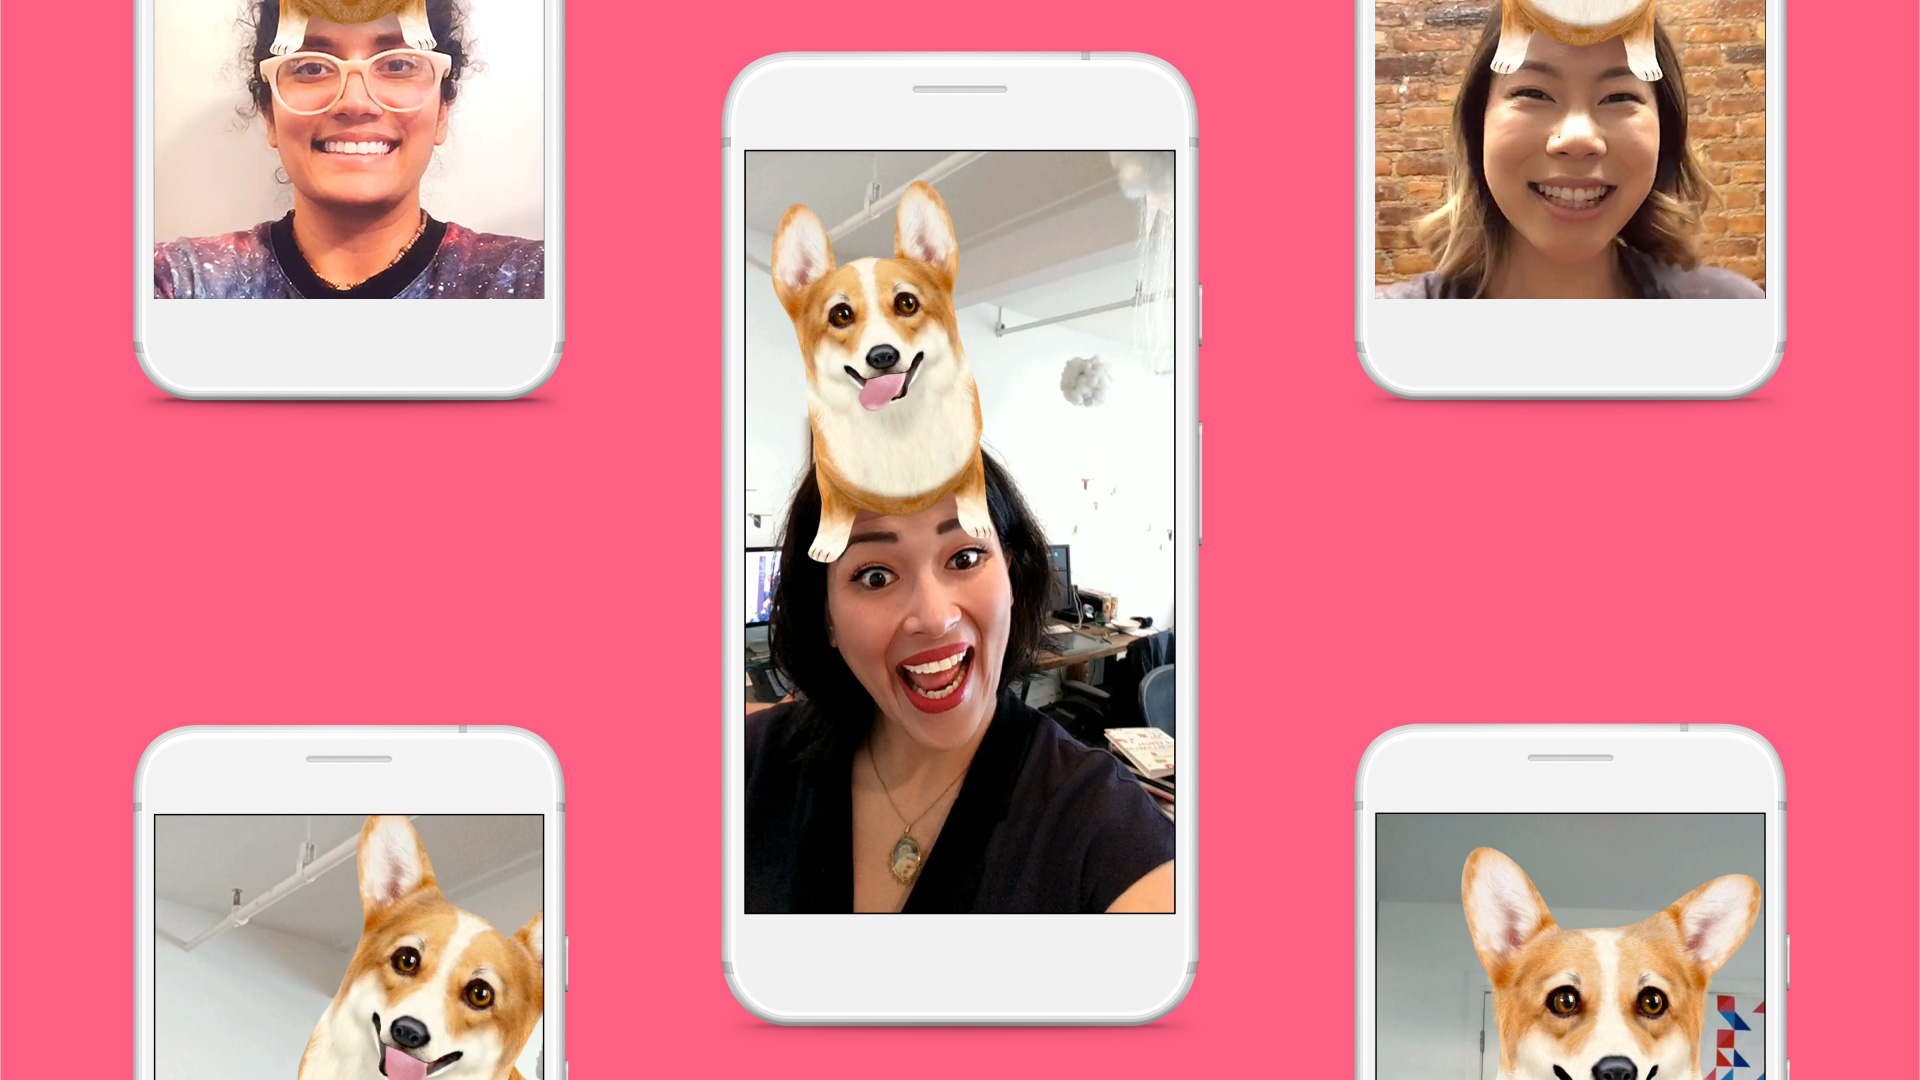 Facebook Messenger – AR Filters